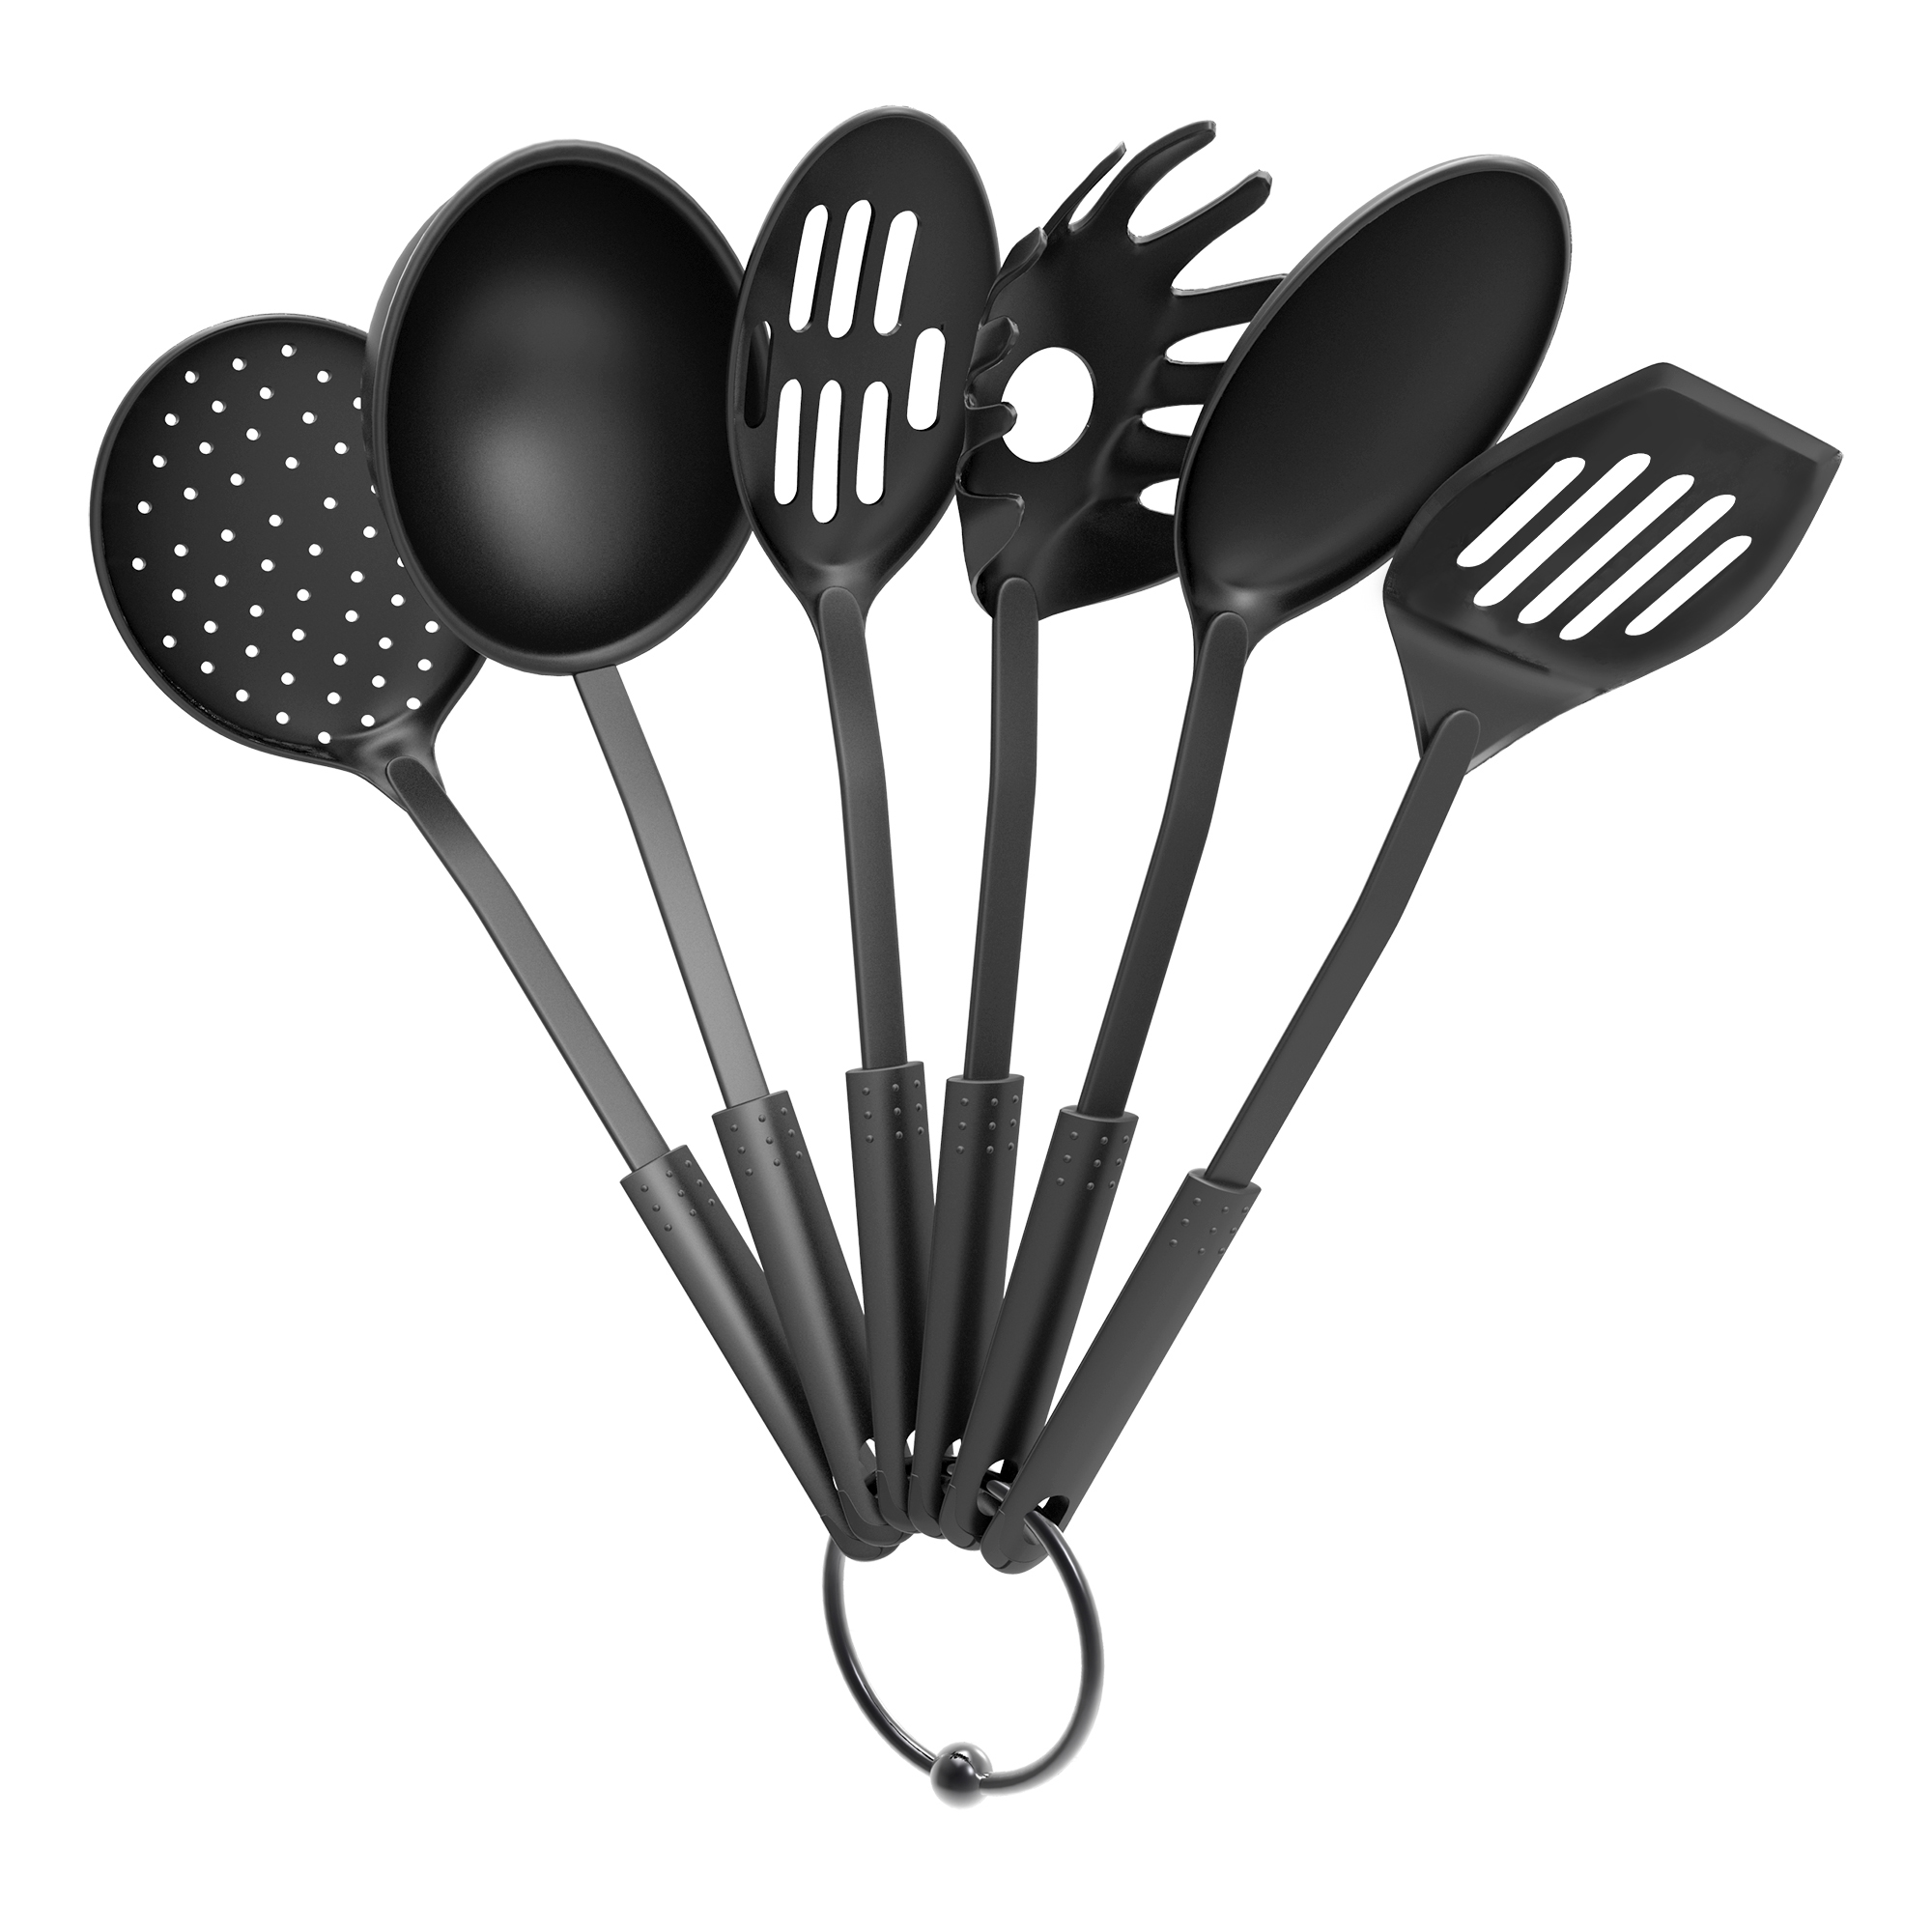 Kitchen Utensil and Gadget Set- Includes Plastic Spatula and Spoons by Chef Buddy- Cookware Set on a Ring (Six Piece Set)- Kitchen Essentials